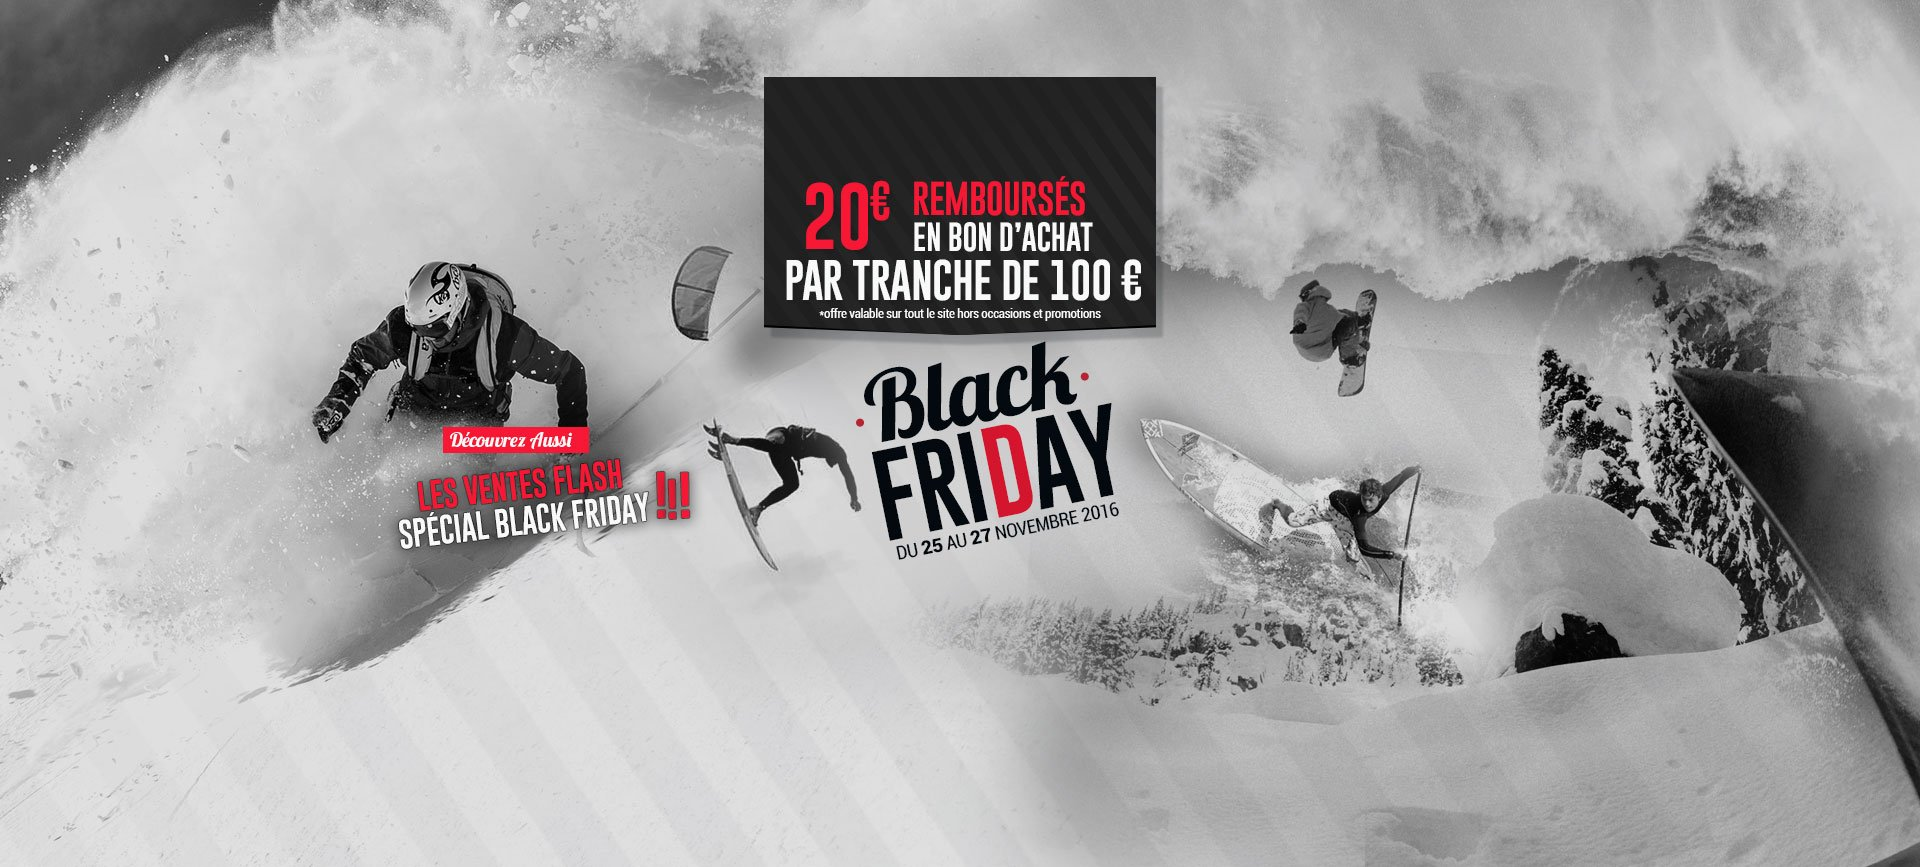 Black Friday 2016 chez Freeride-attitude